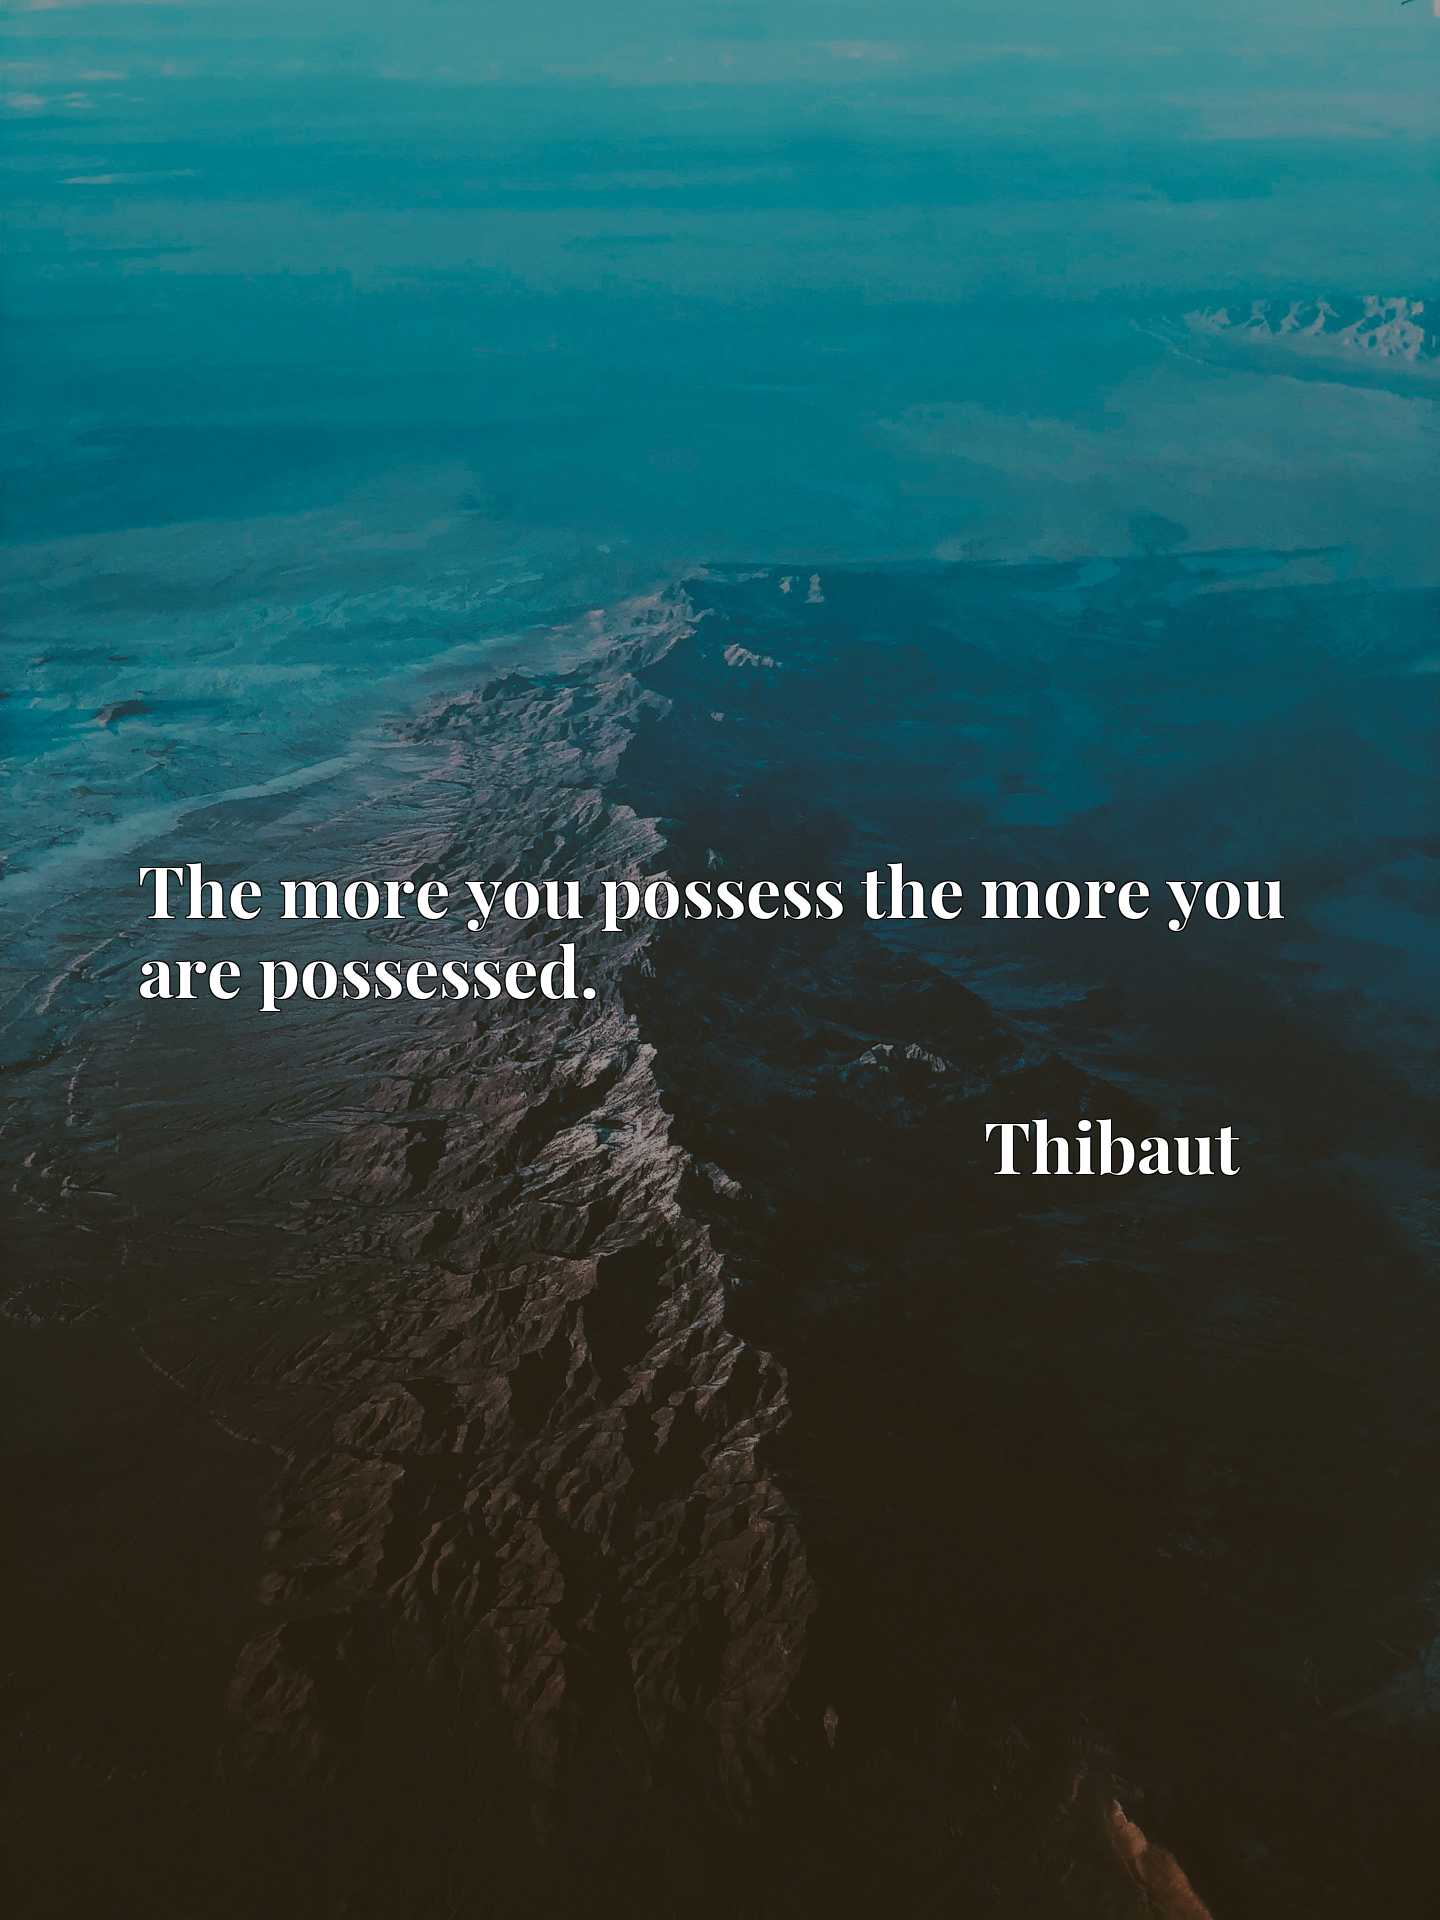 The more you possess the more you are possessed.